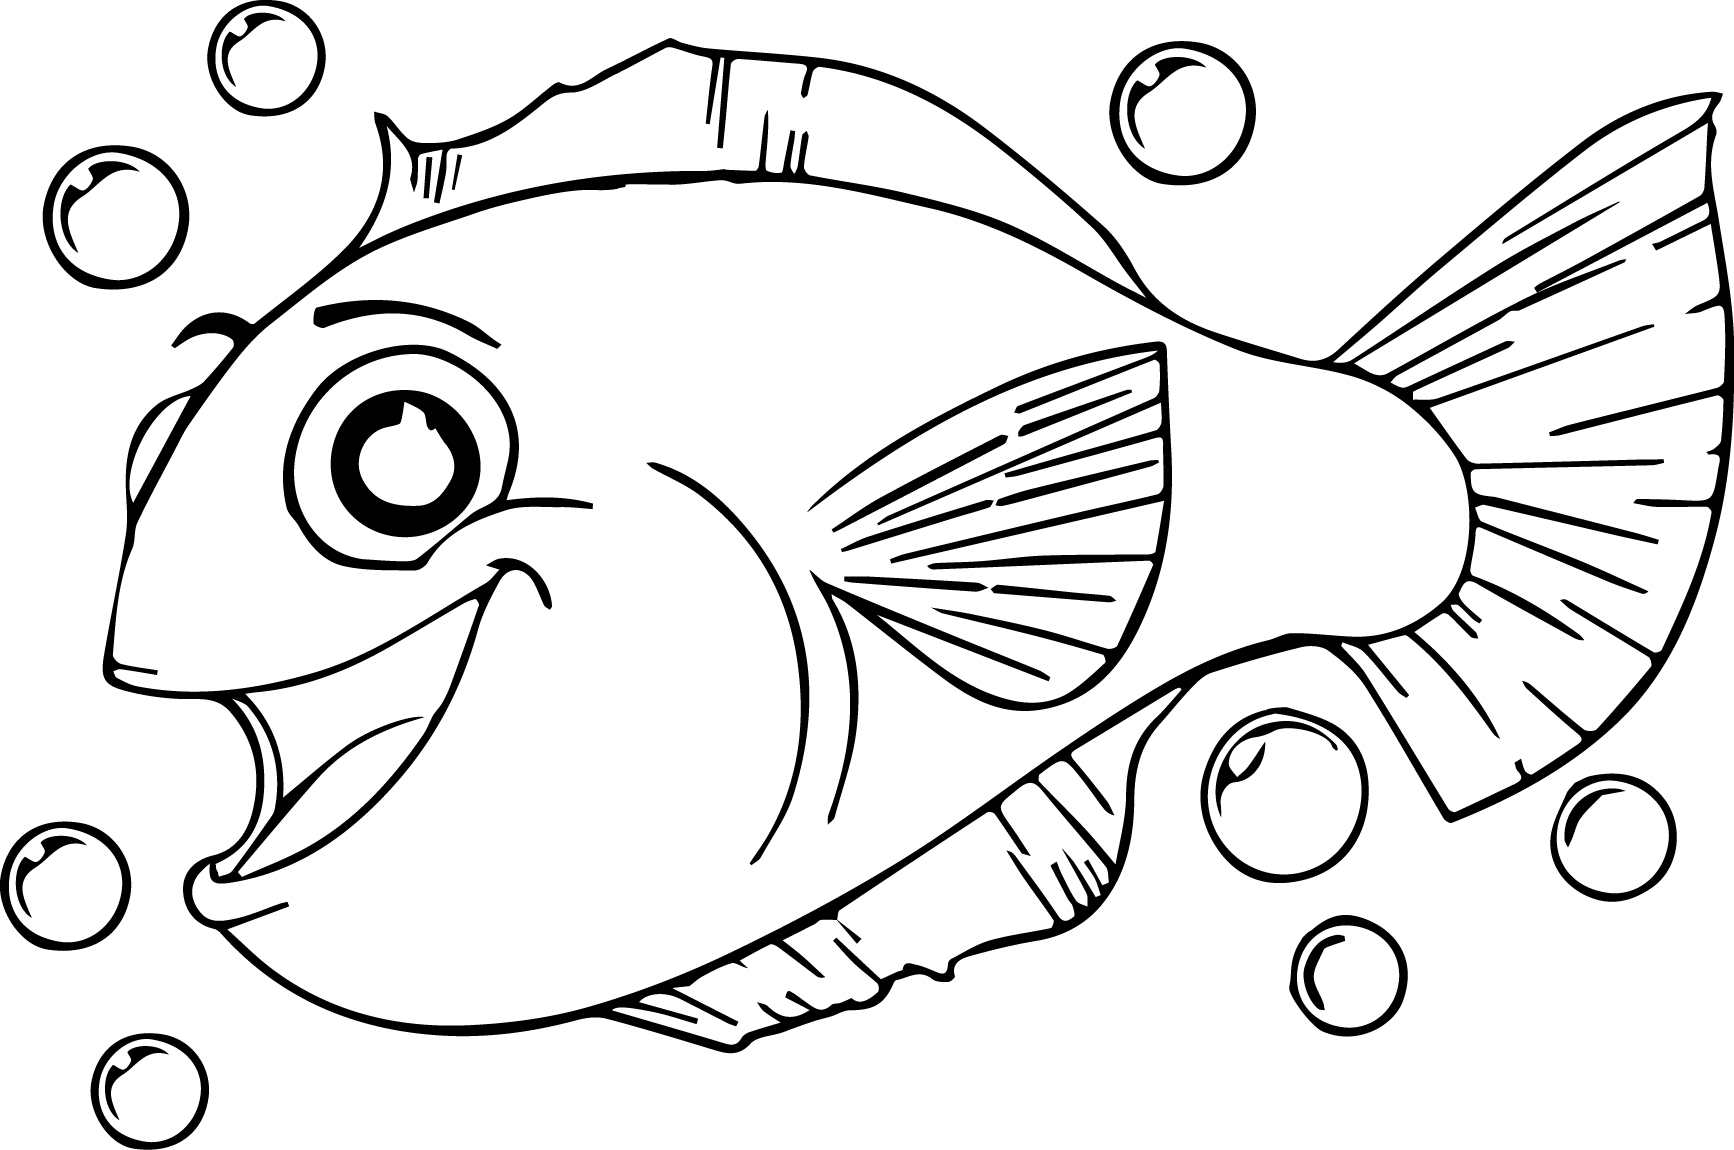 Much cartoon fish coloring page sheet for Fish cartoon coloring pages